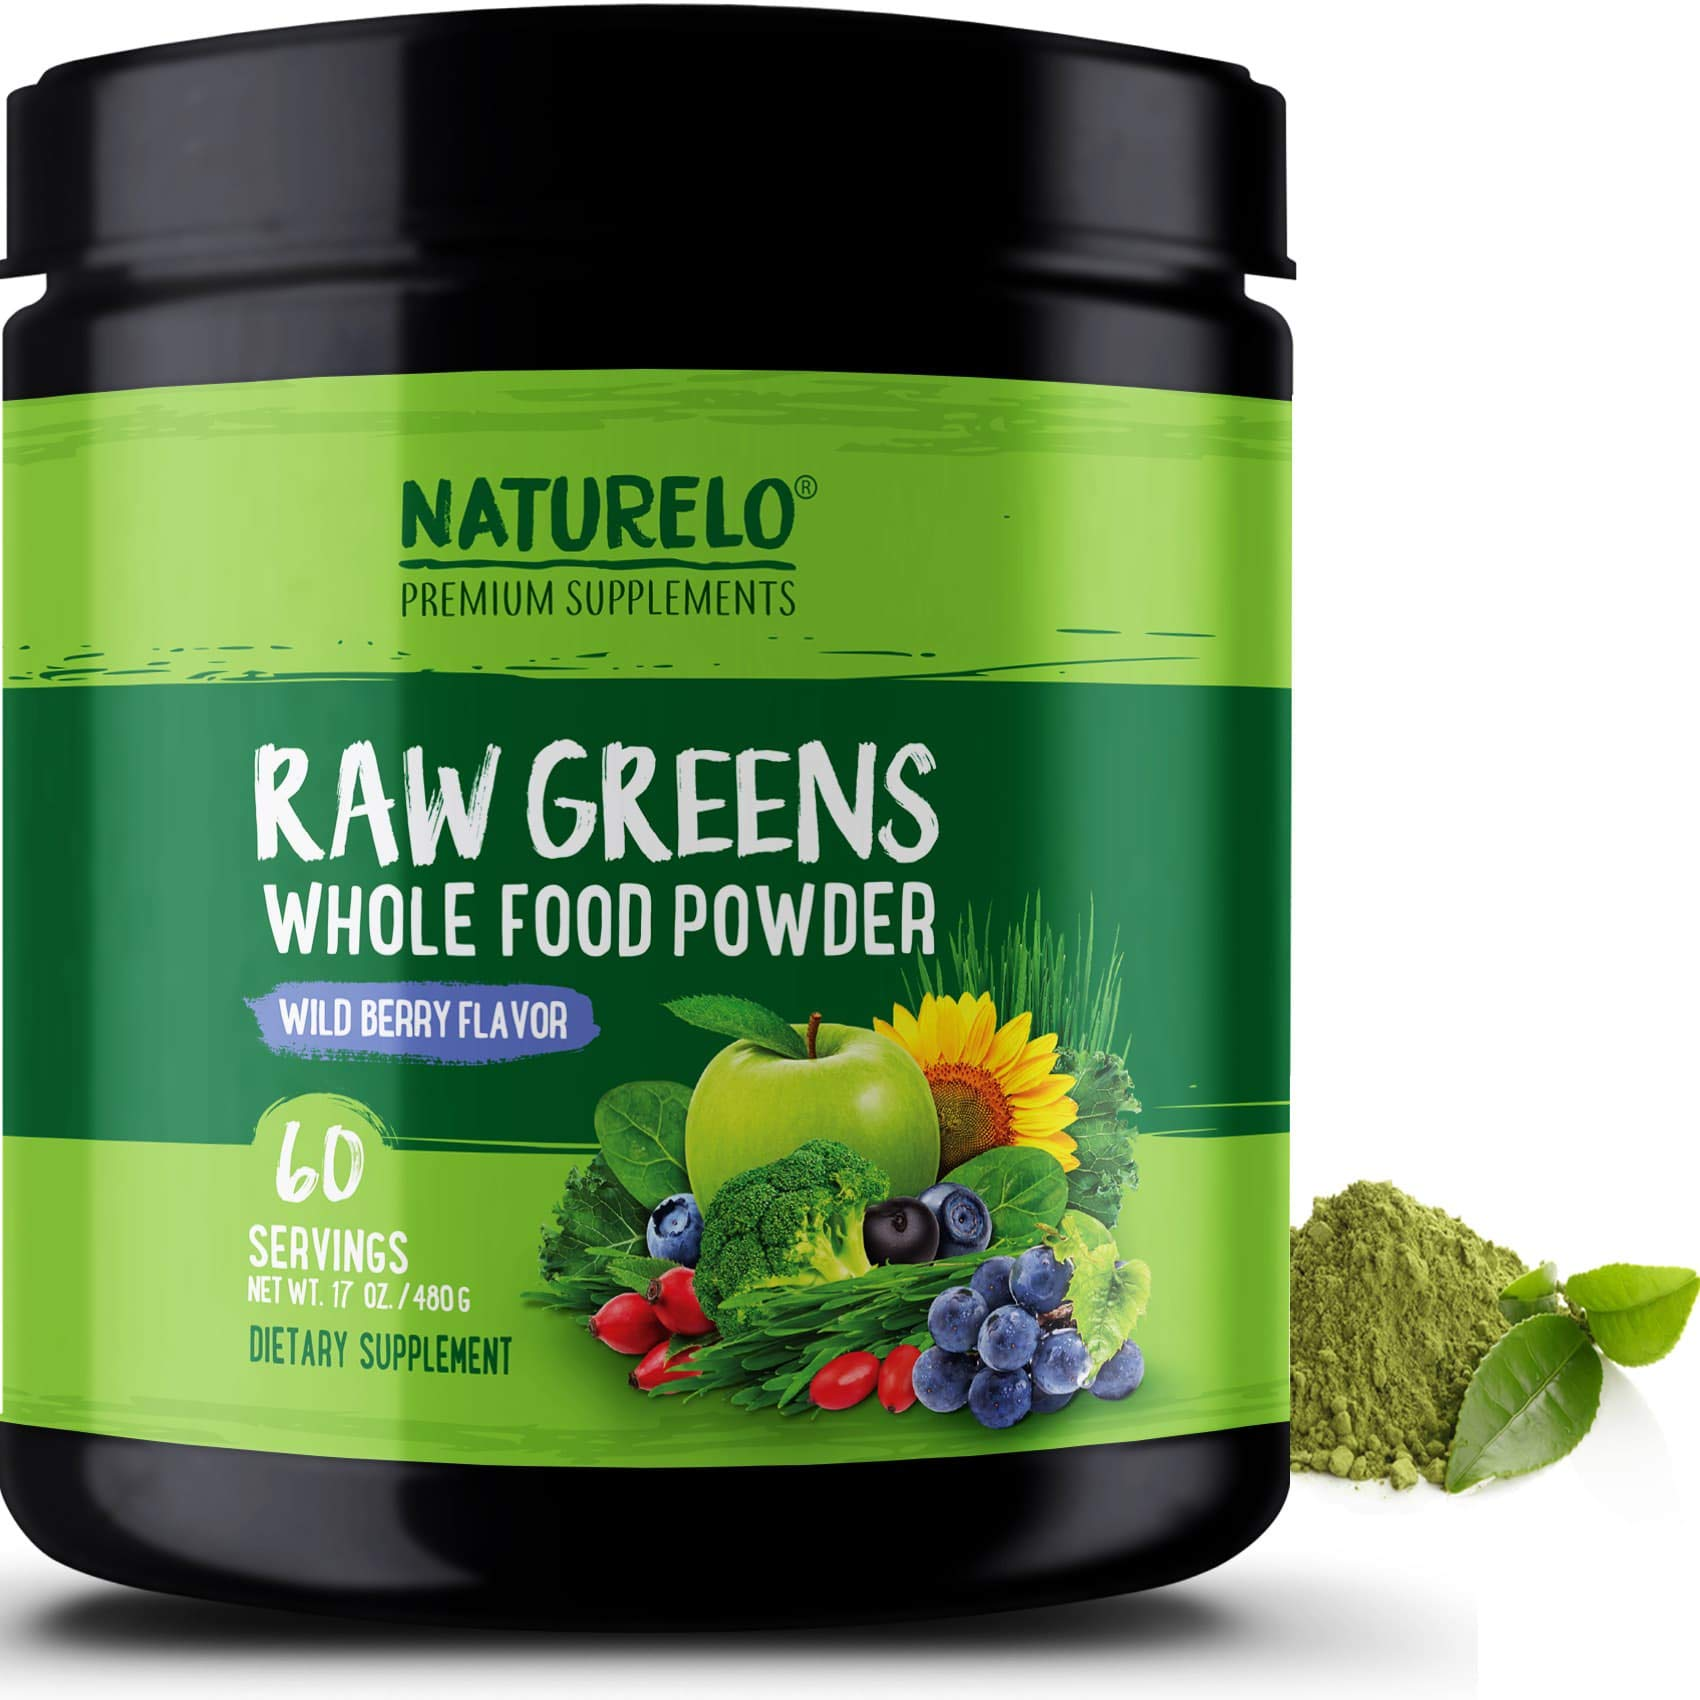 NATURELO Raw Greens Superfood Powder - Best Supplement to Boost Energy, Detox, Enhance Health - Organic Spirulina & Wheat Grass - Whole Food Vitamins from Fruit & Vegetable Extracts - 60 Servings